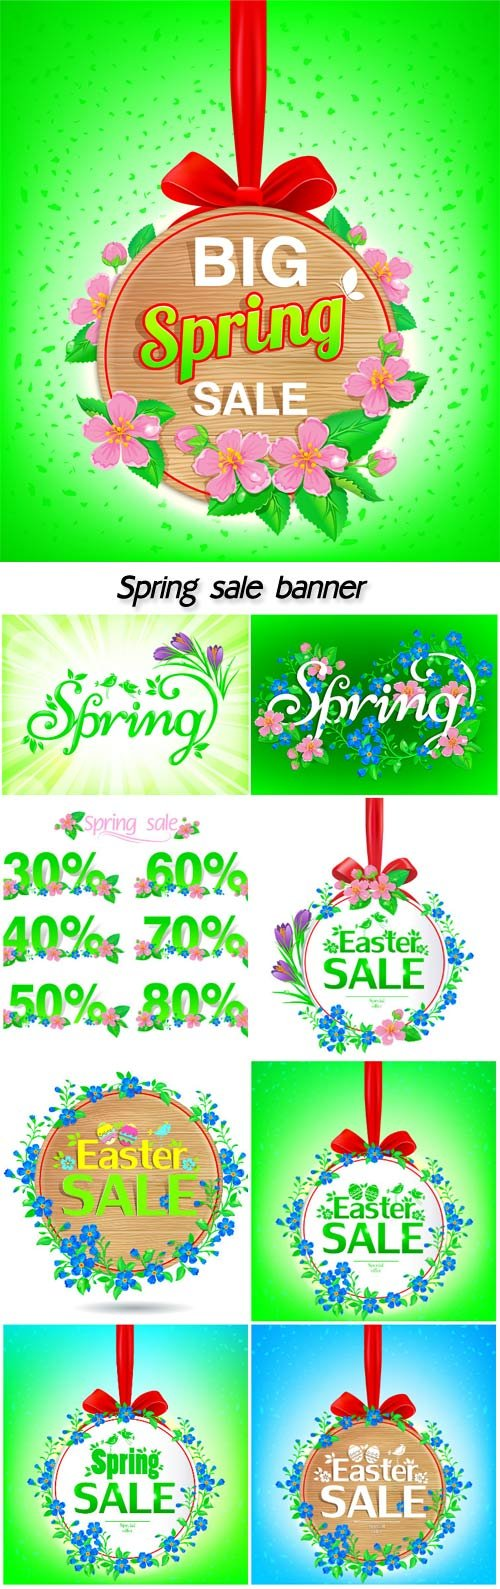 Spring flowers background, sale banner